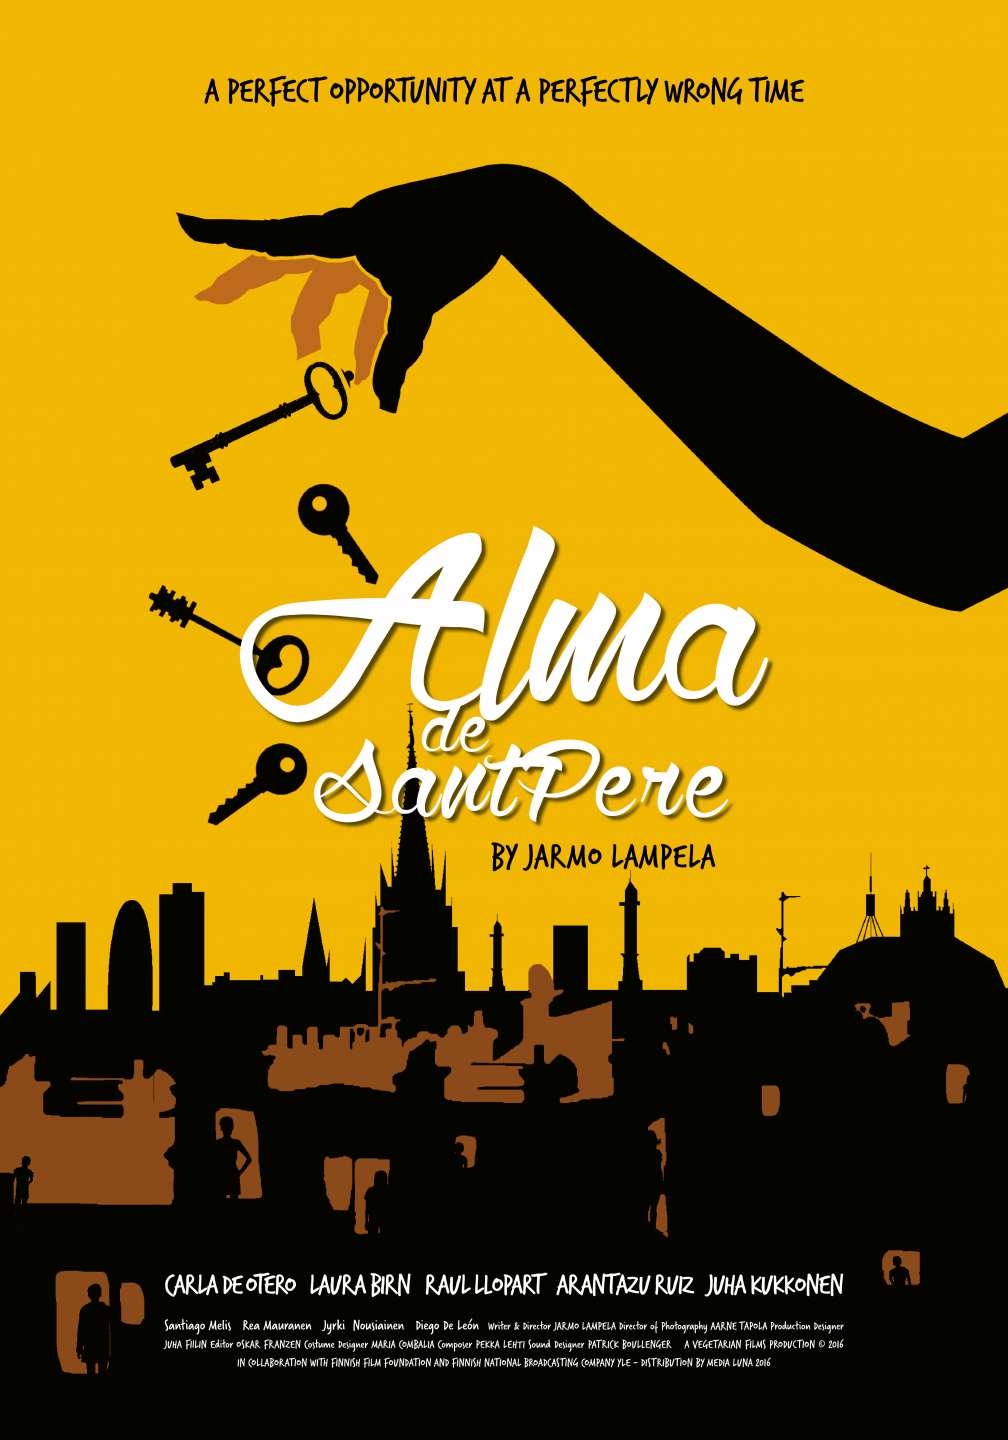 ALMA-poster-Yellow-Graphic-CMYK-paths